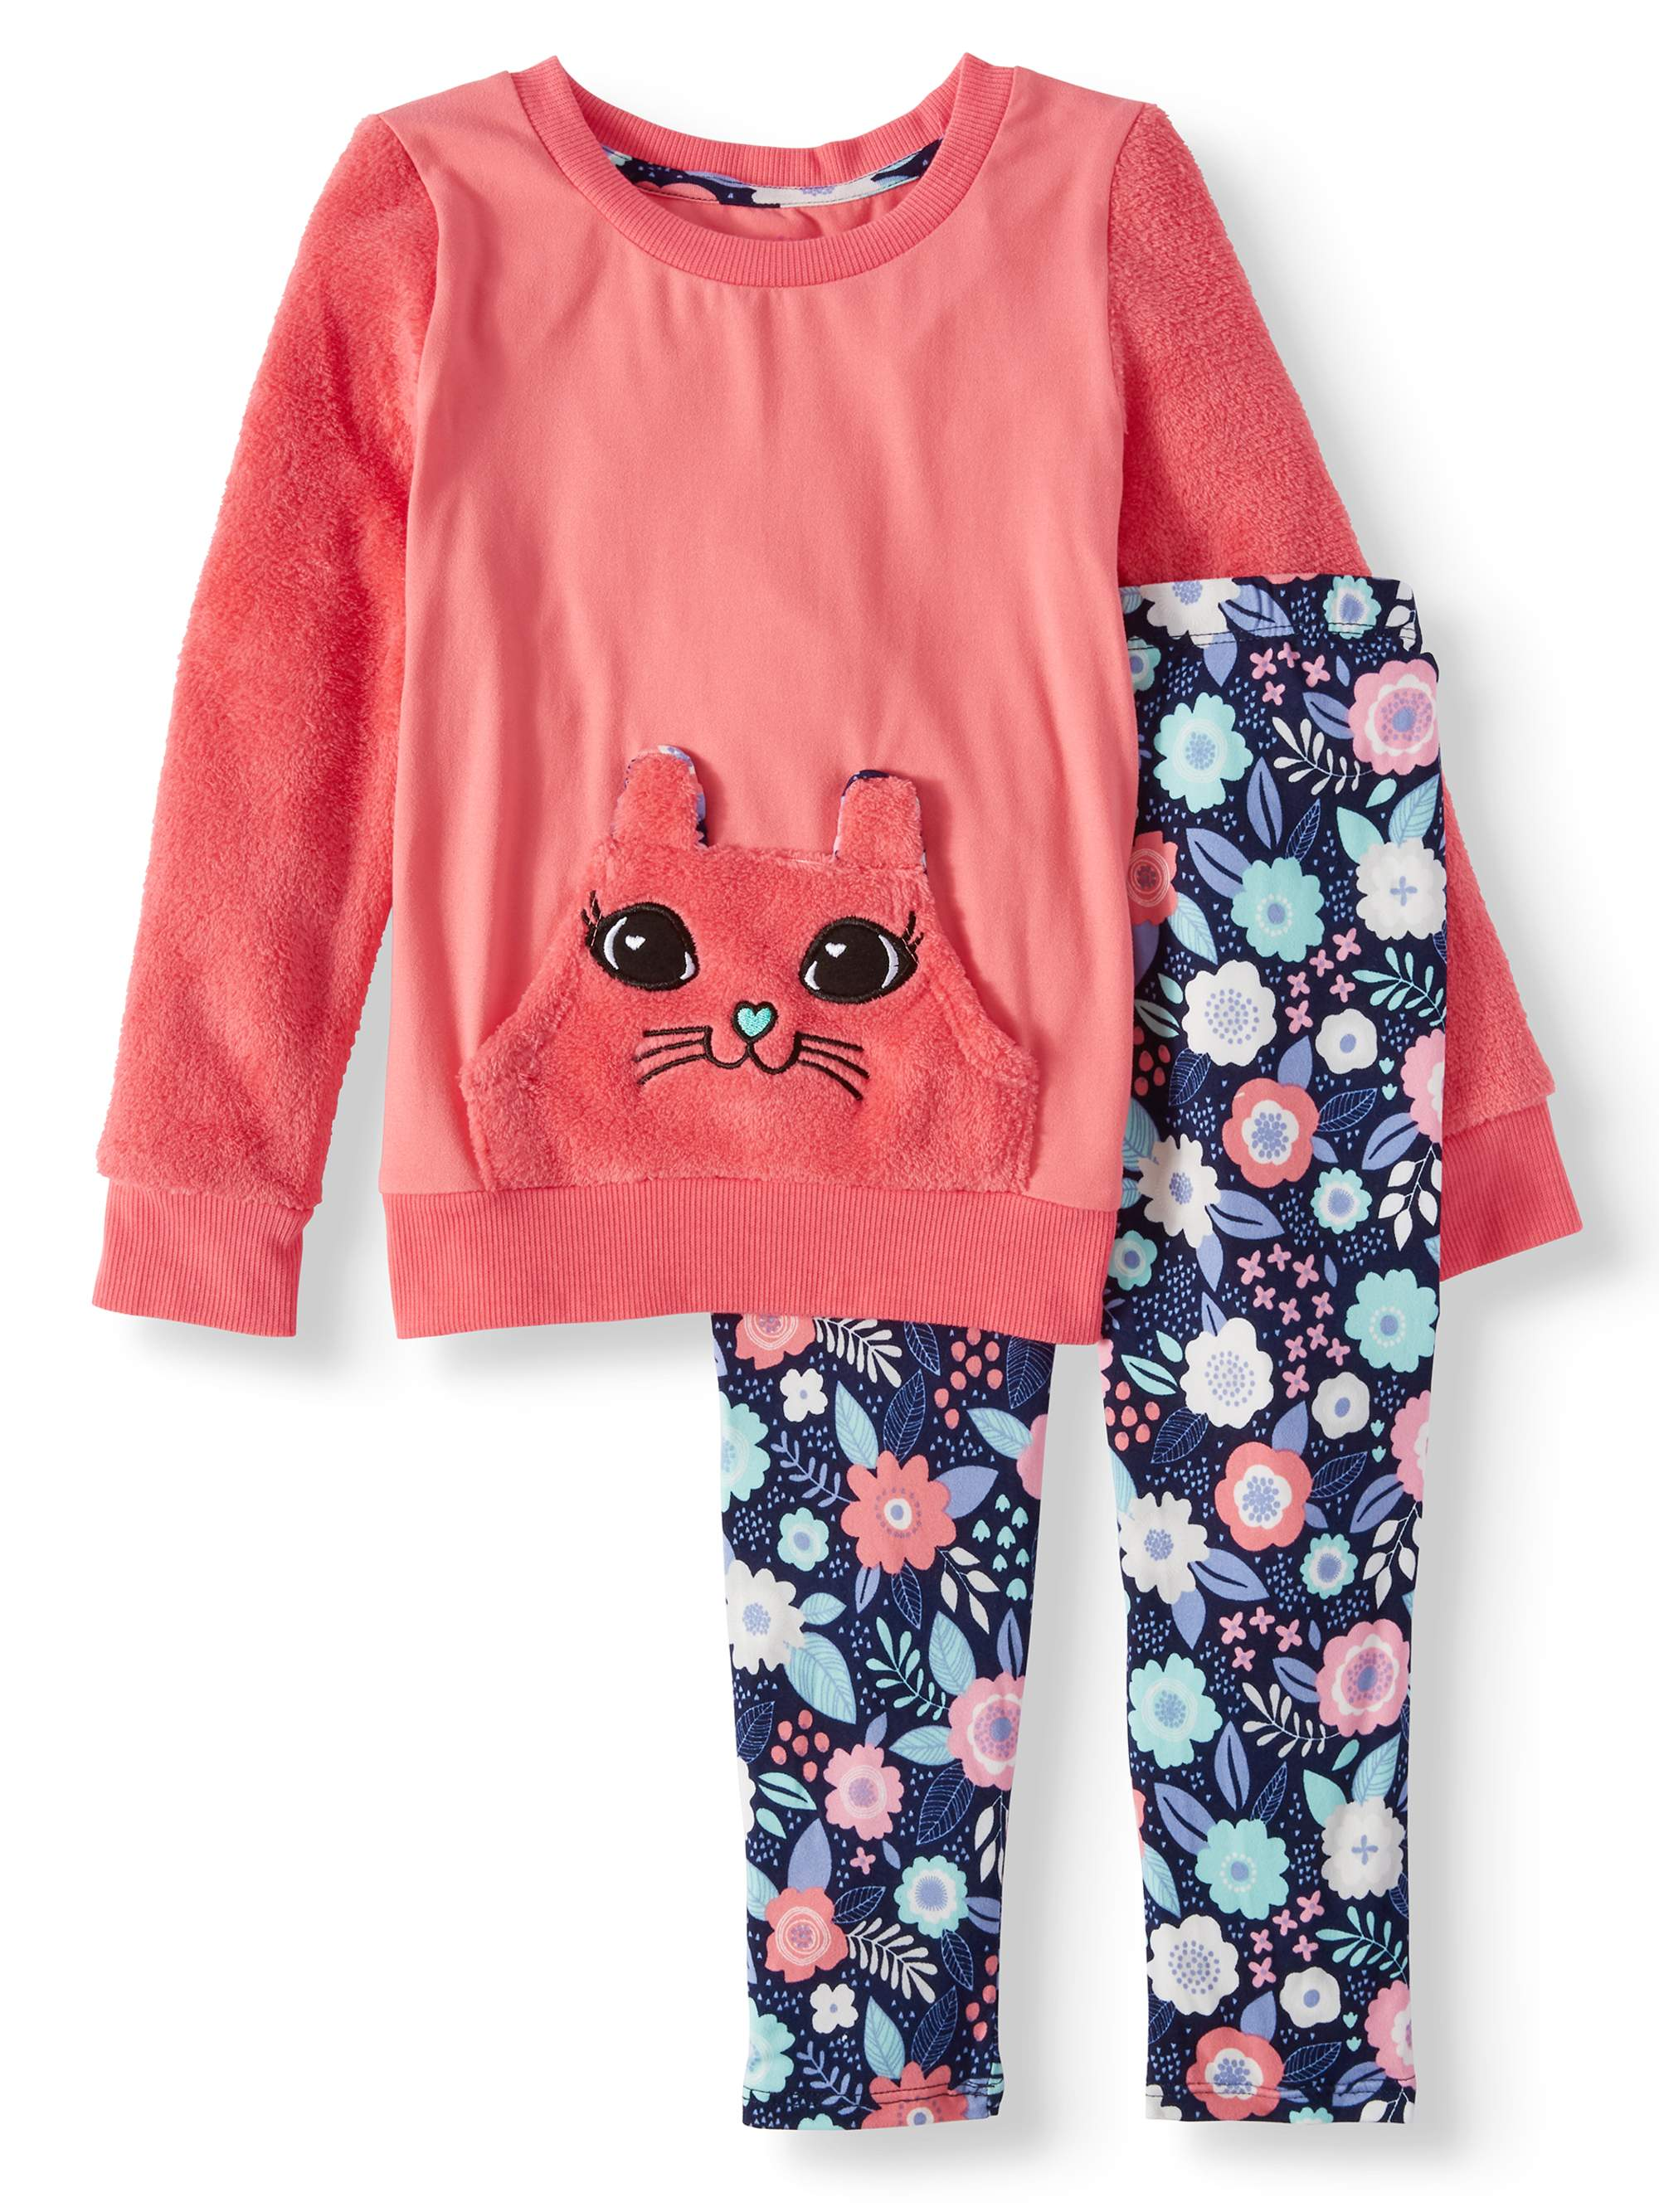 Embroidered Bunny Tunic and Printed Legging, 2-Piece Outfit Set (Little Girls)